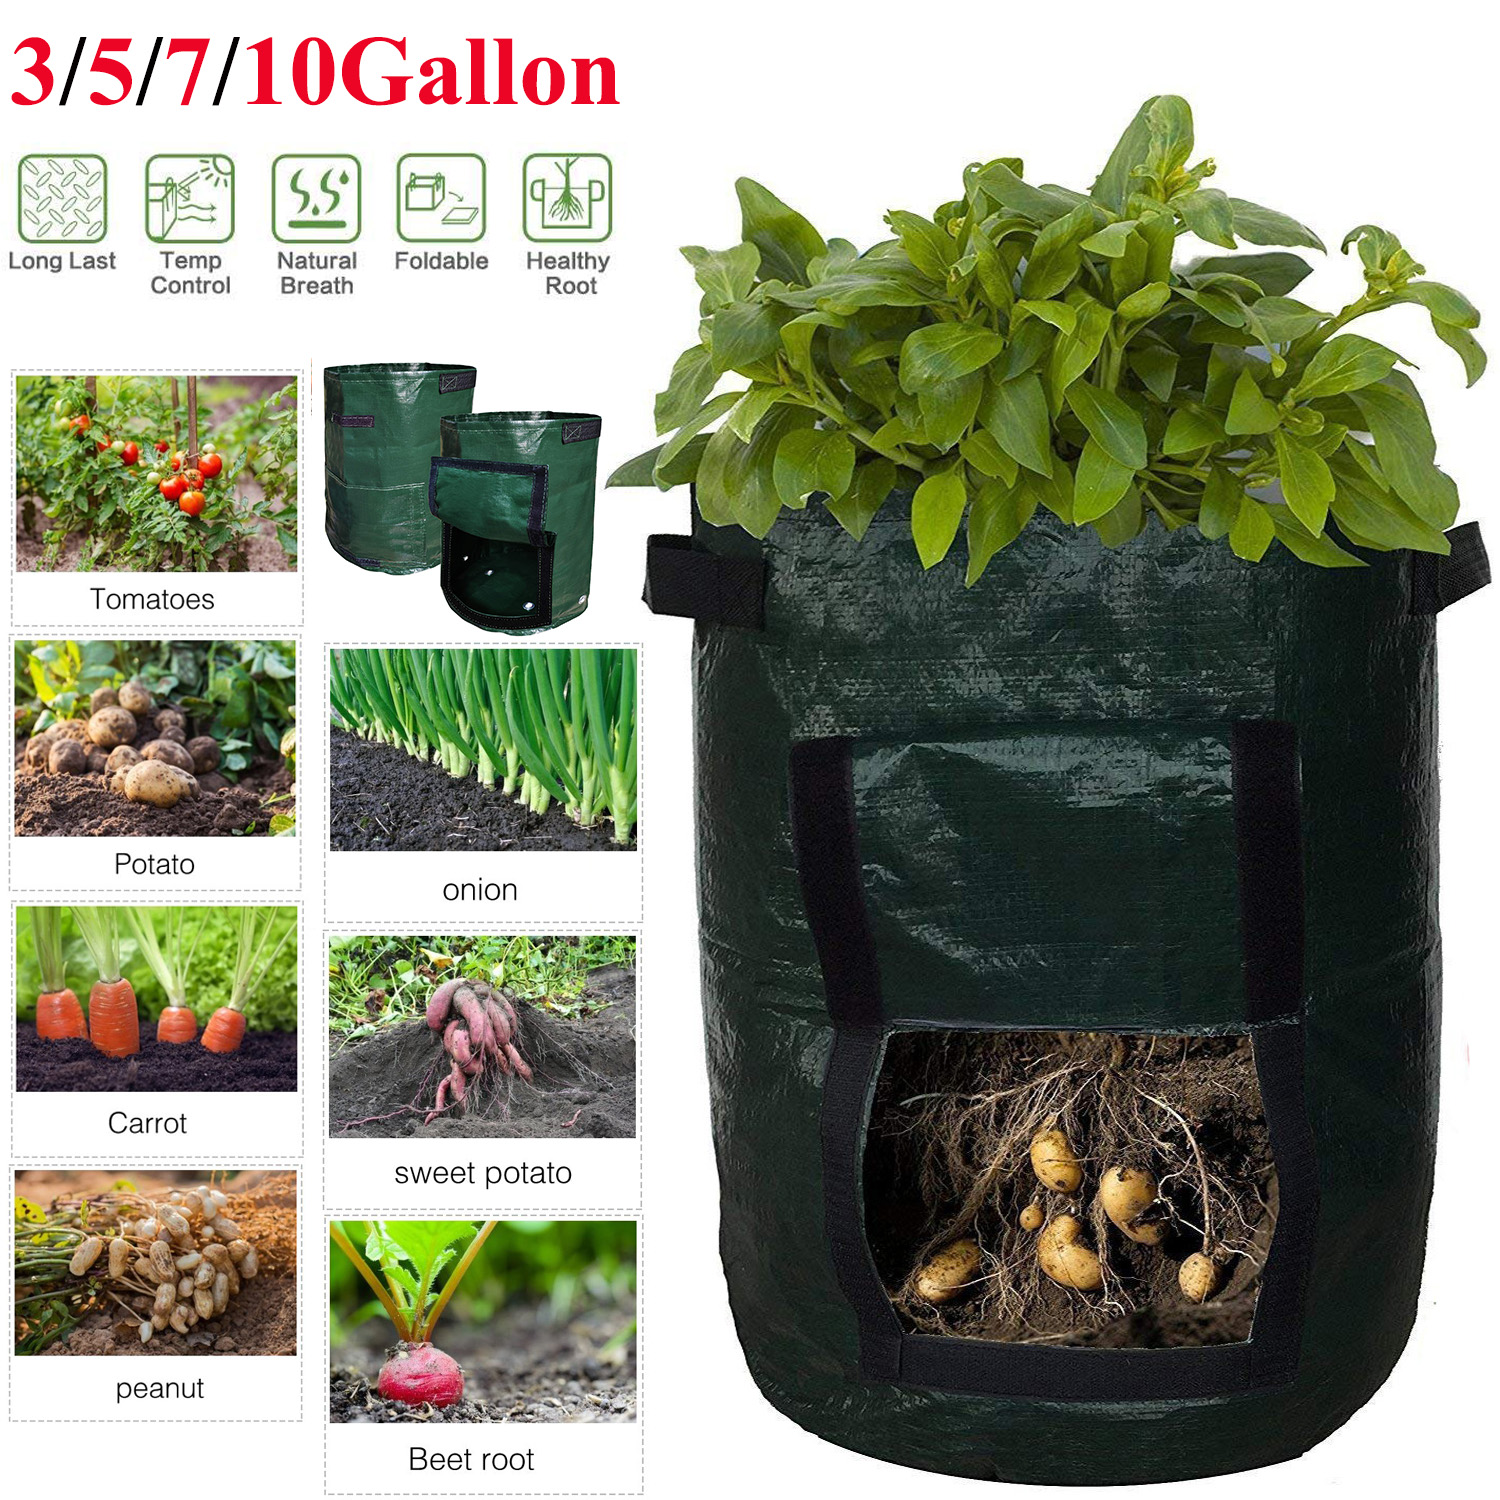 Plant Grow Bag Potato Grow Container Bag Vegetable Gardening Thicken Pot Planting Grow Bag Garden Tool D30